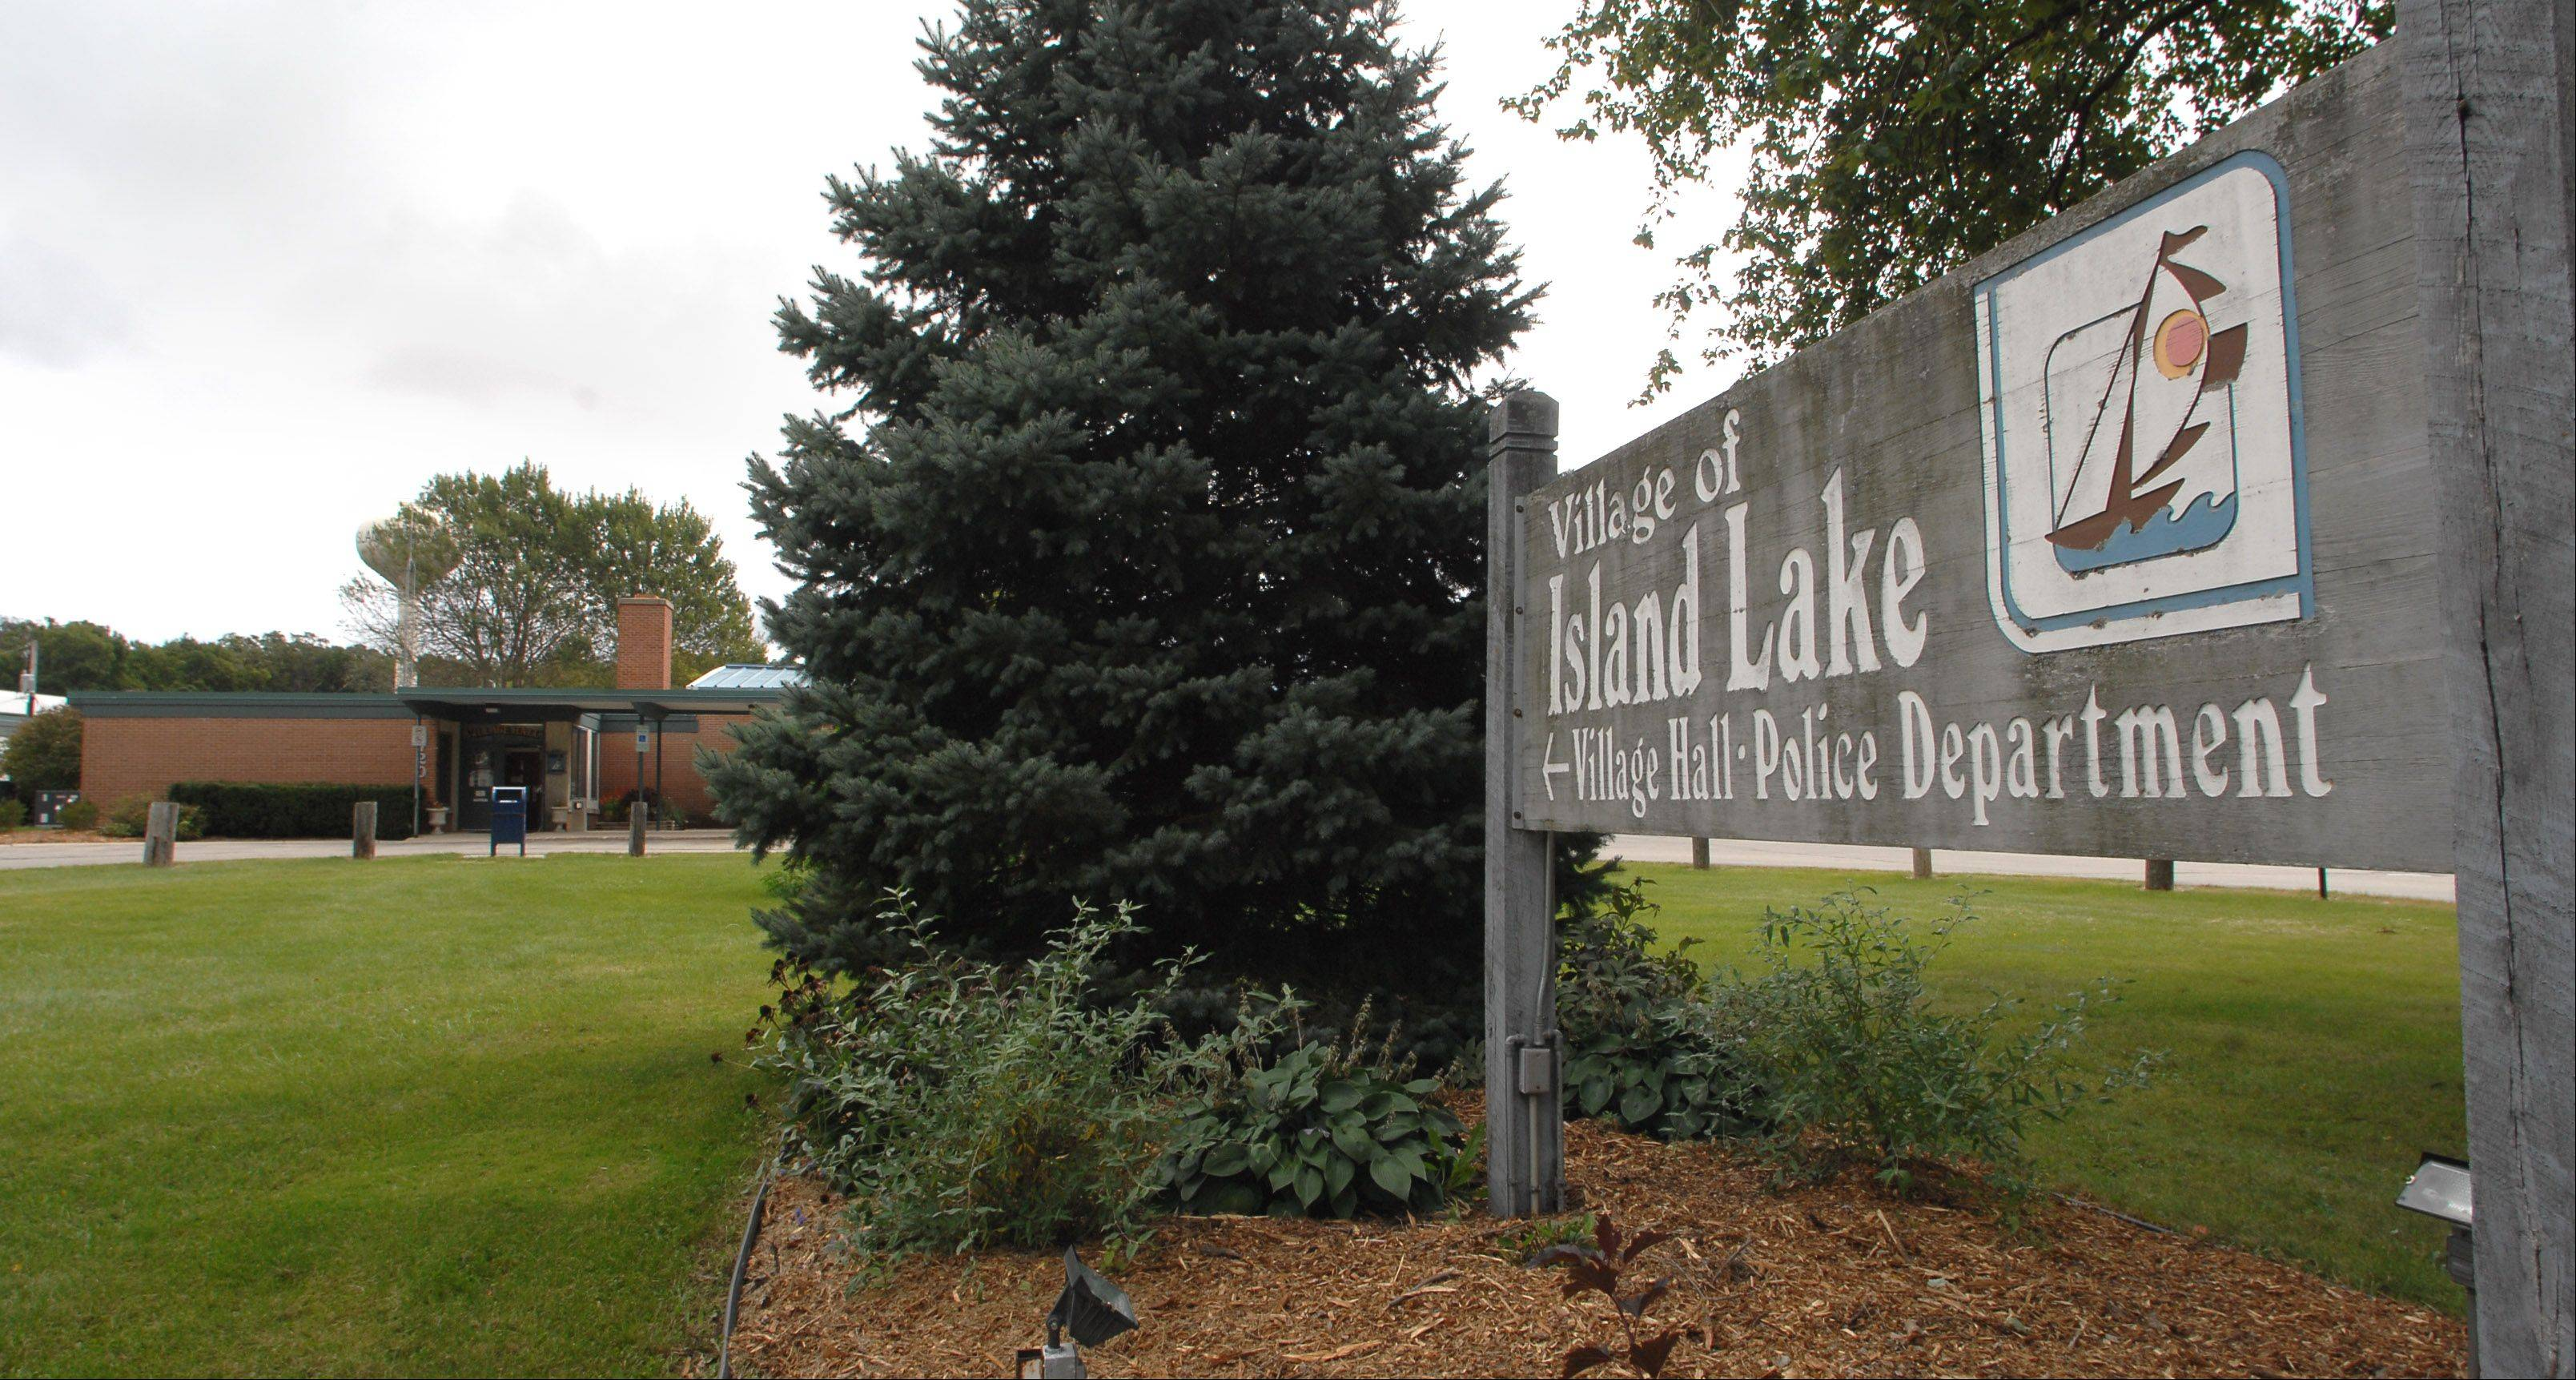 Island Lake voters will be asked in November if officials should undertake a multimillion-dollar building project. A new village hall and police station have been proposed.